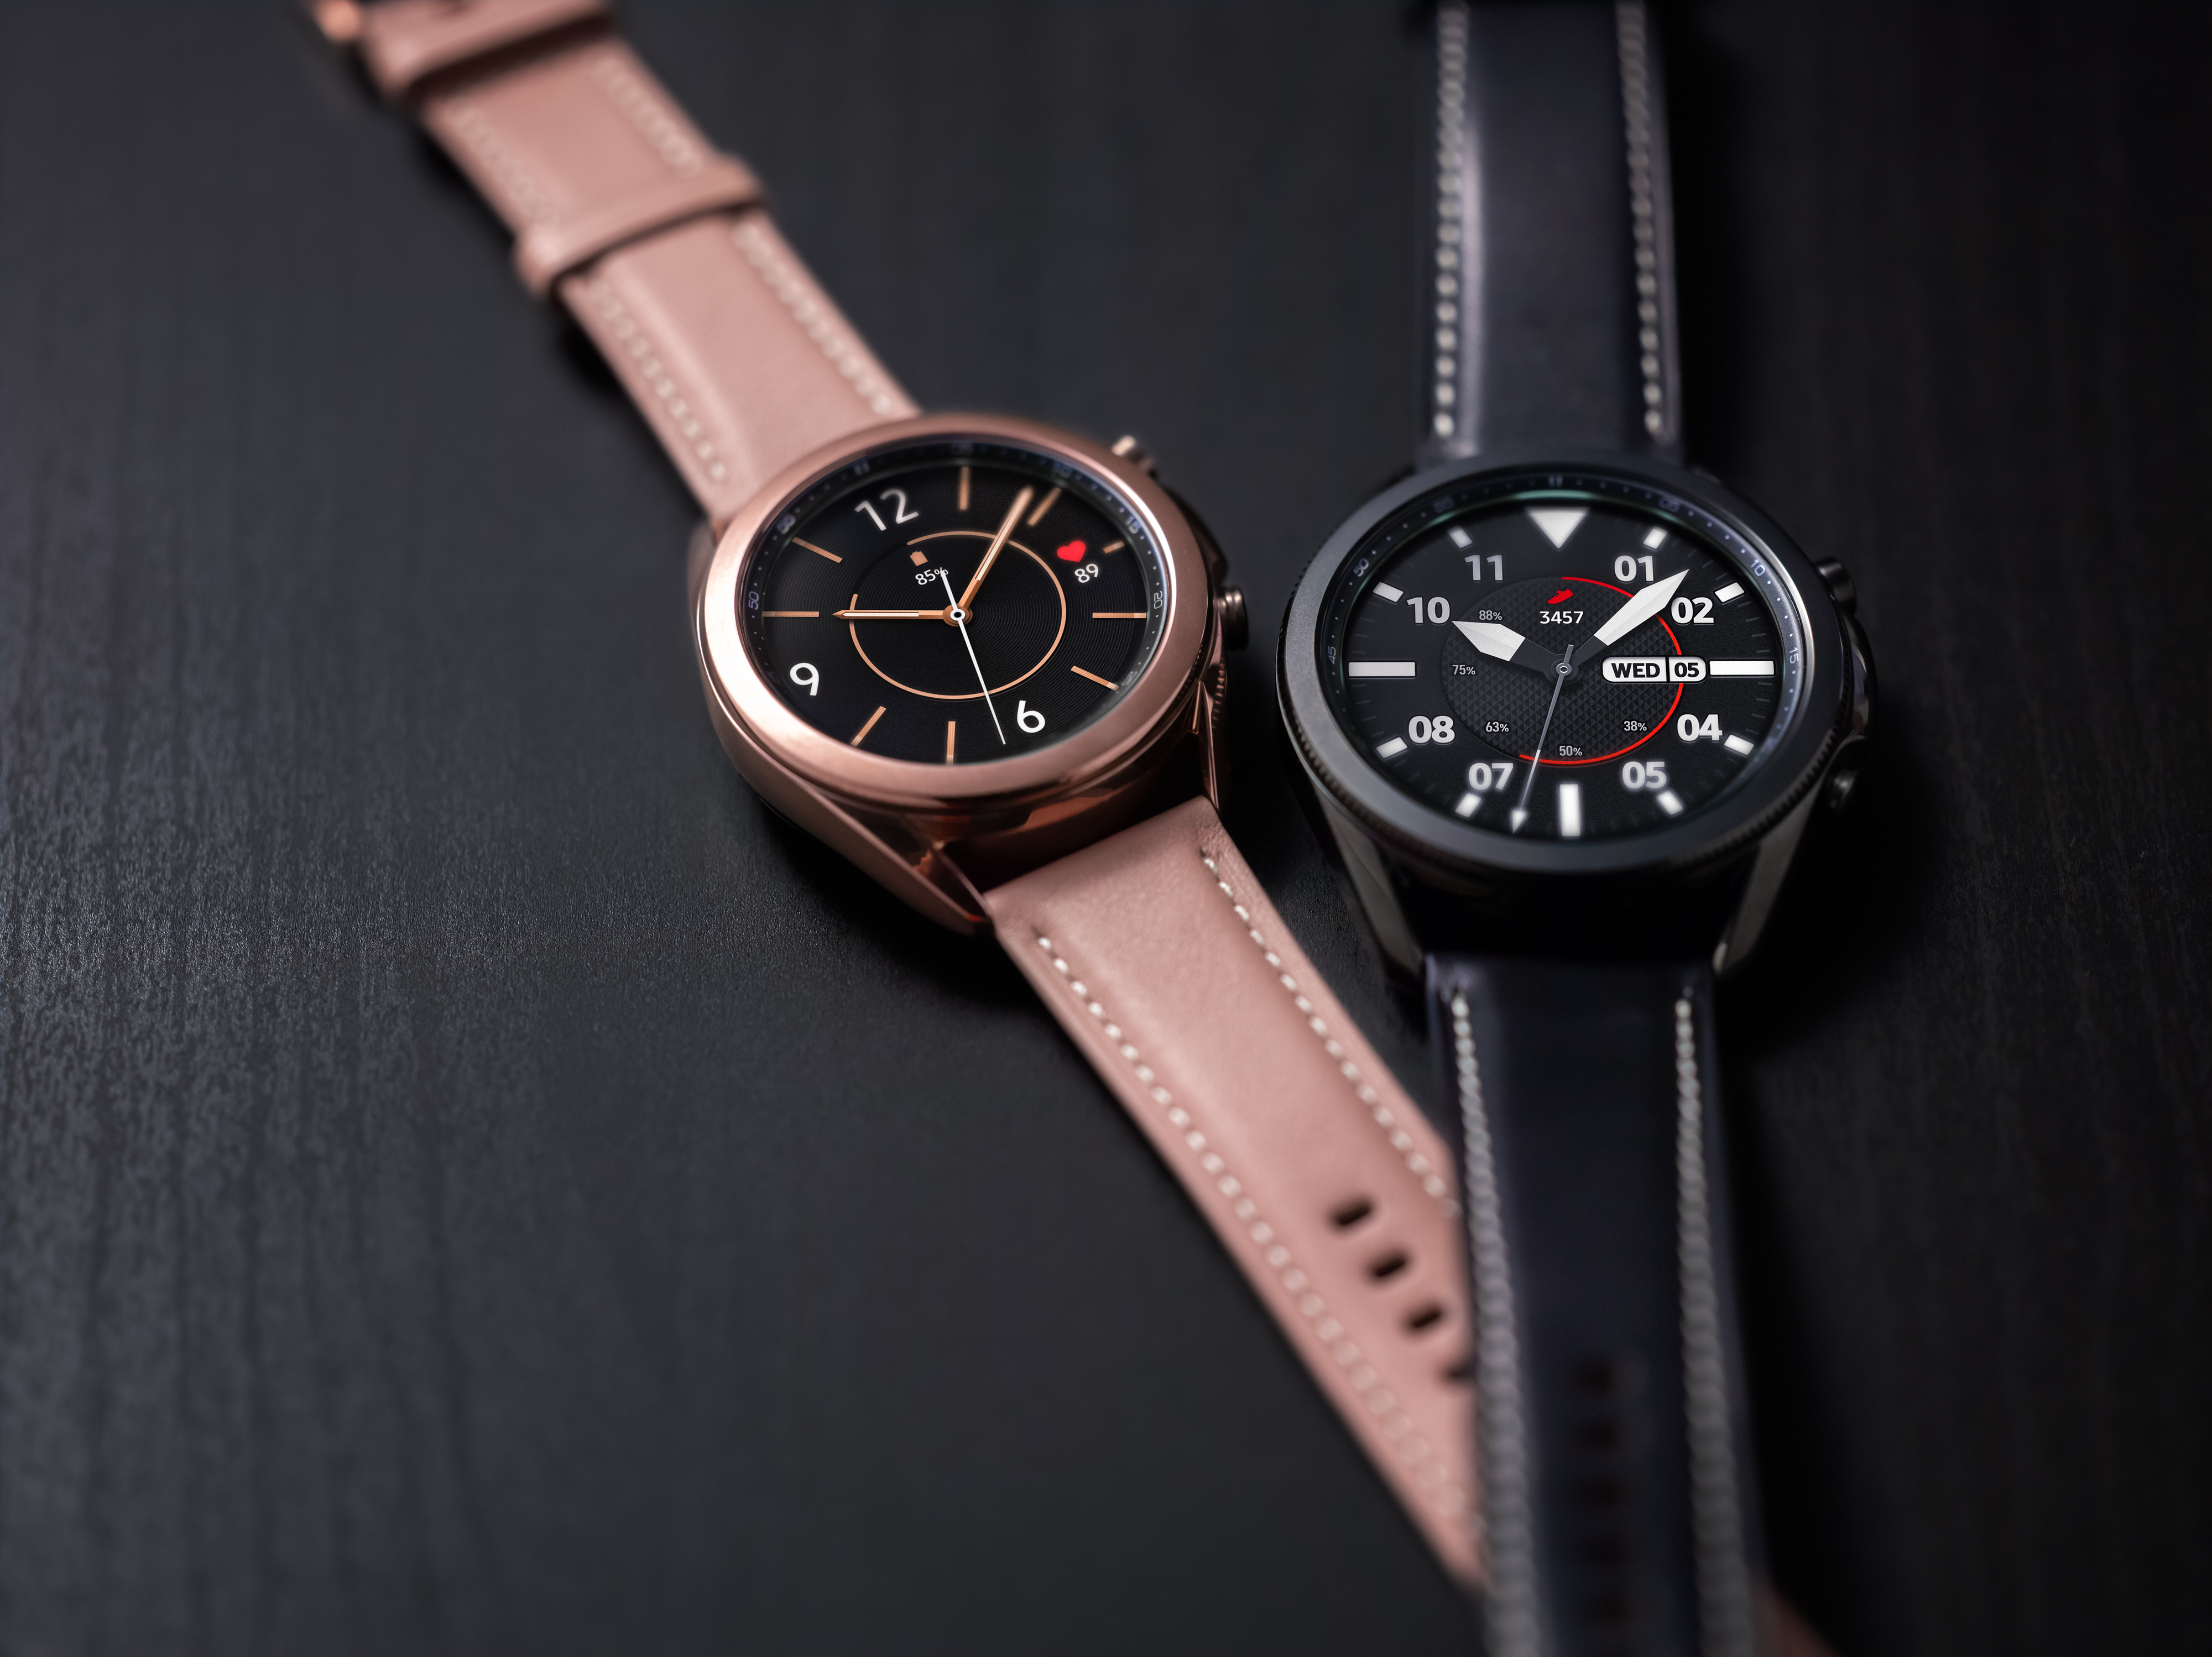 Galaxy Watch 32